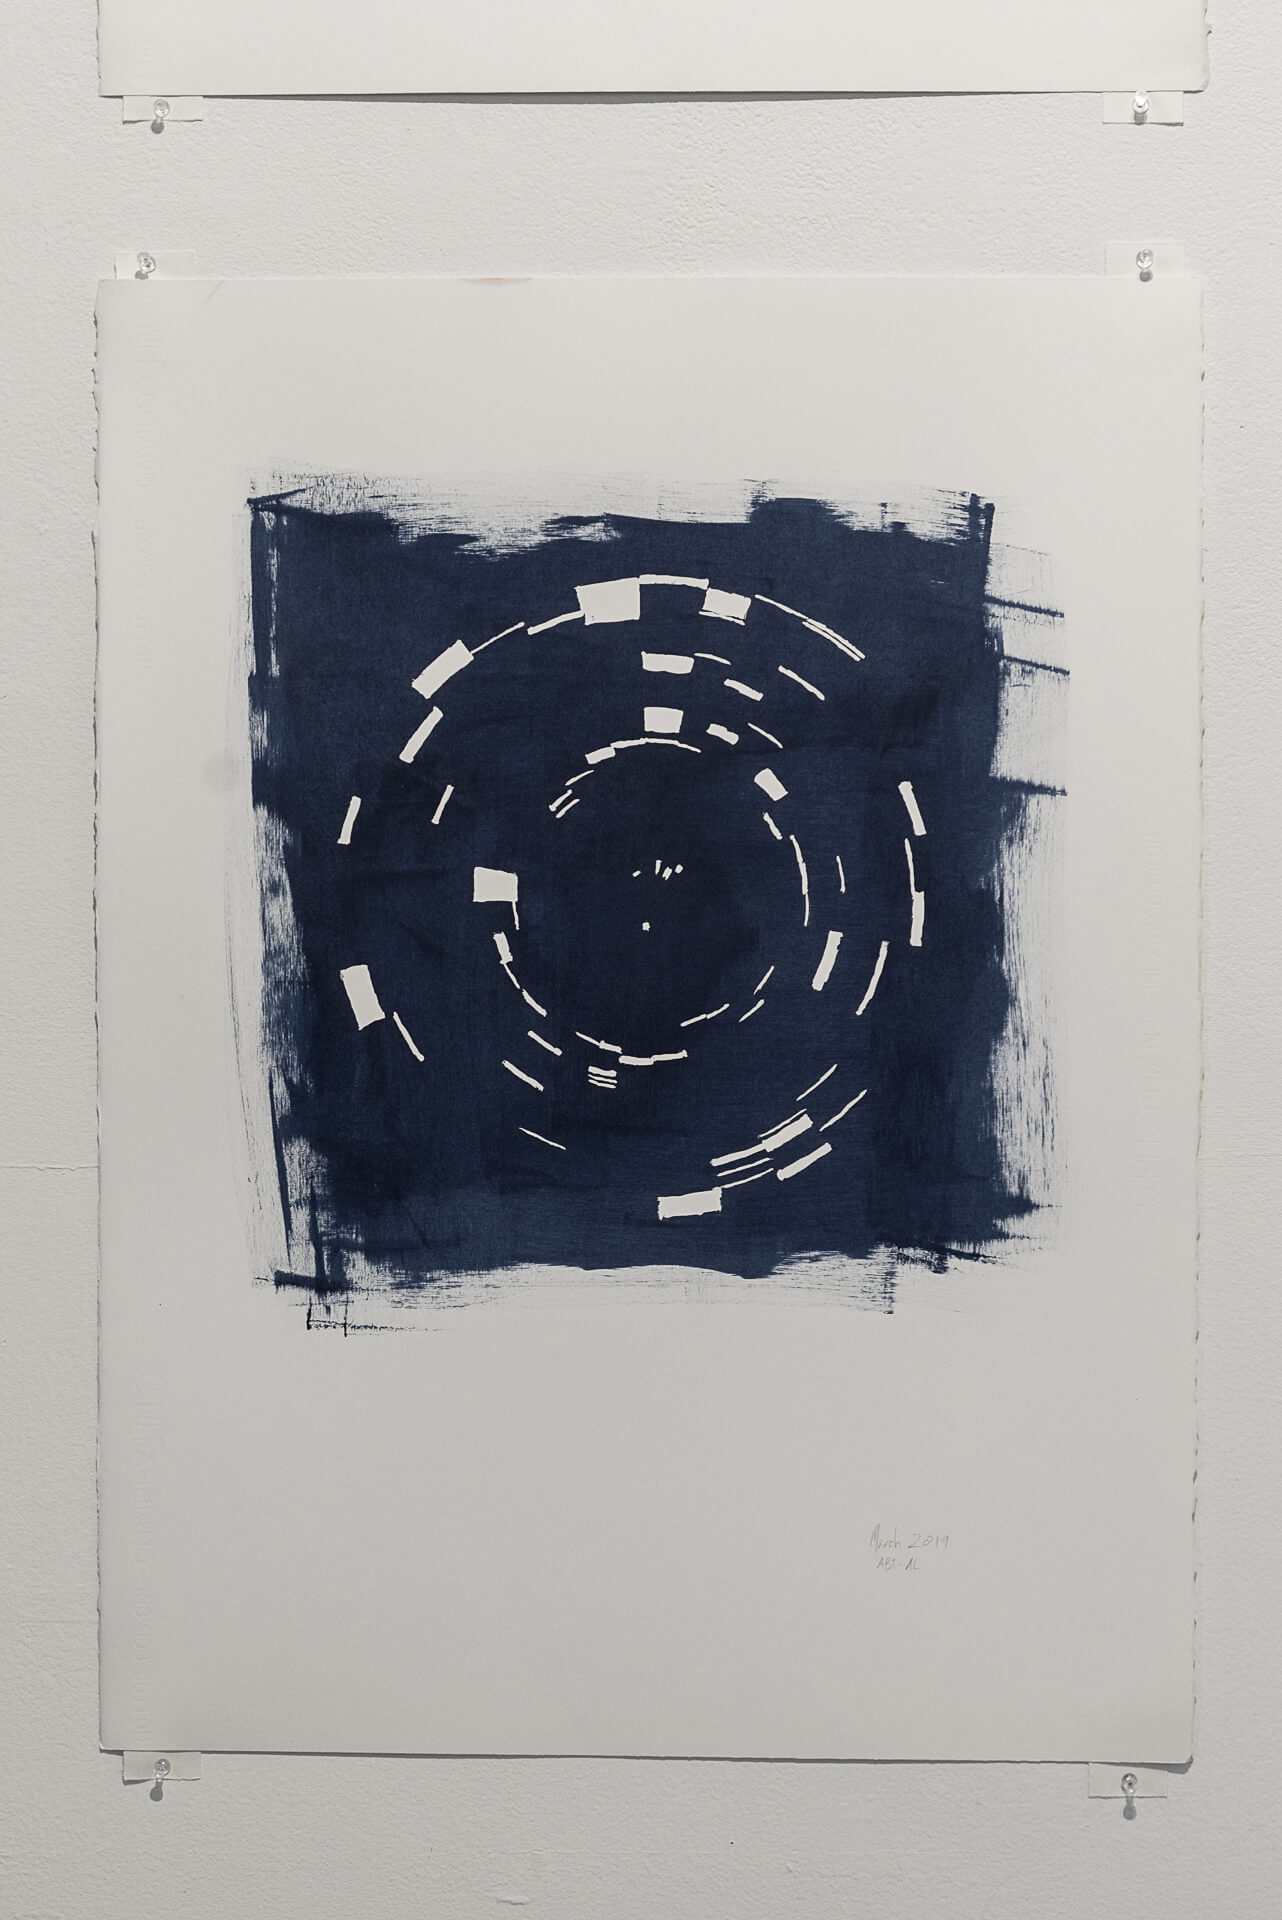 Indigo March 2019   Acrylic on paper, 30 x 22 inches